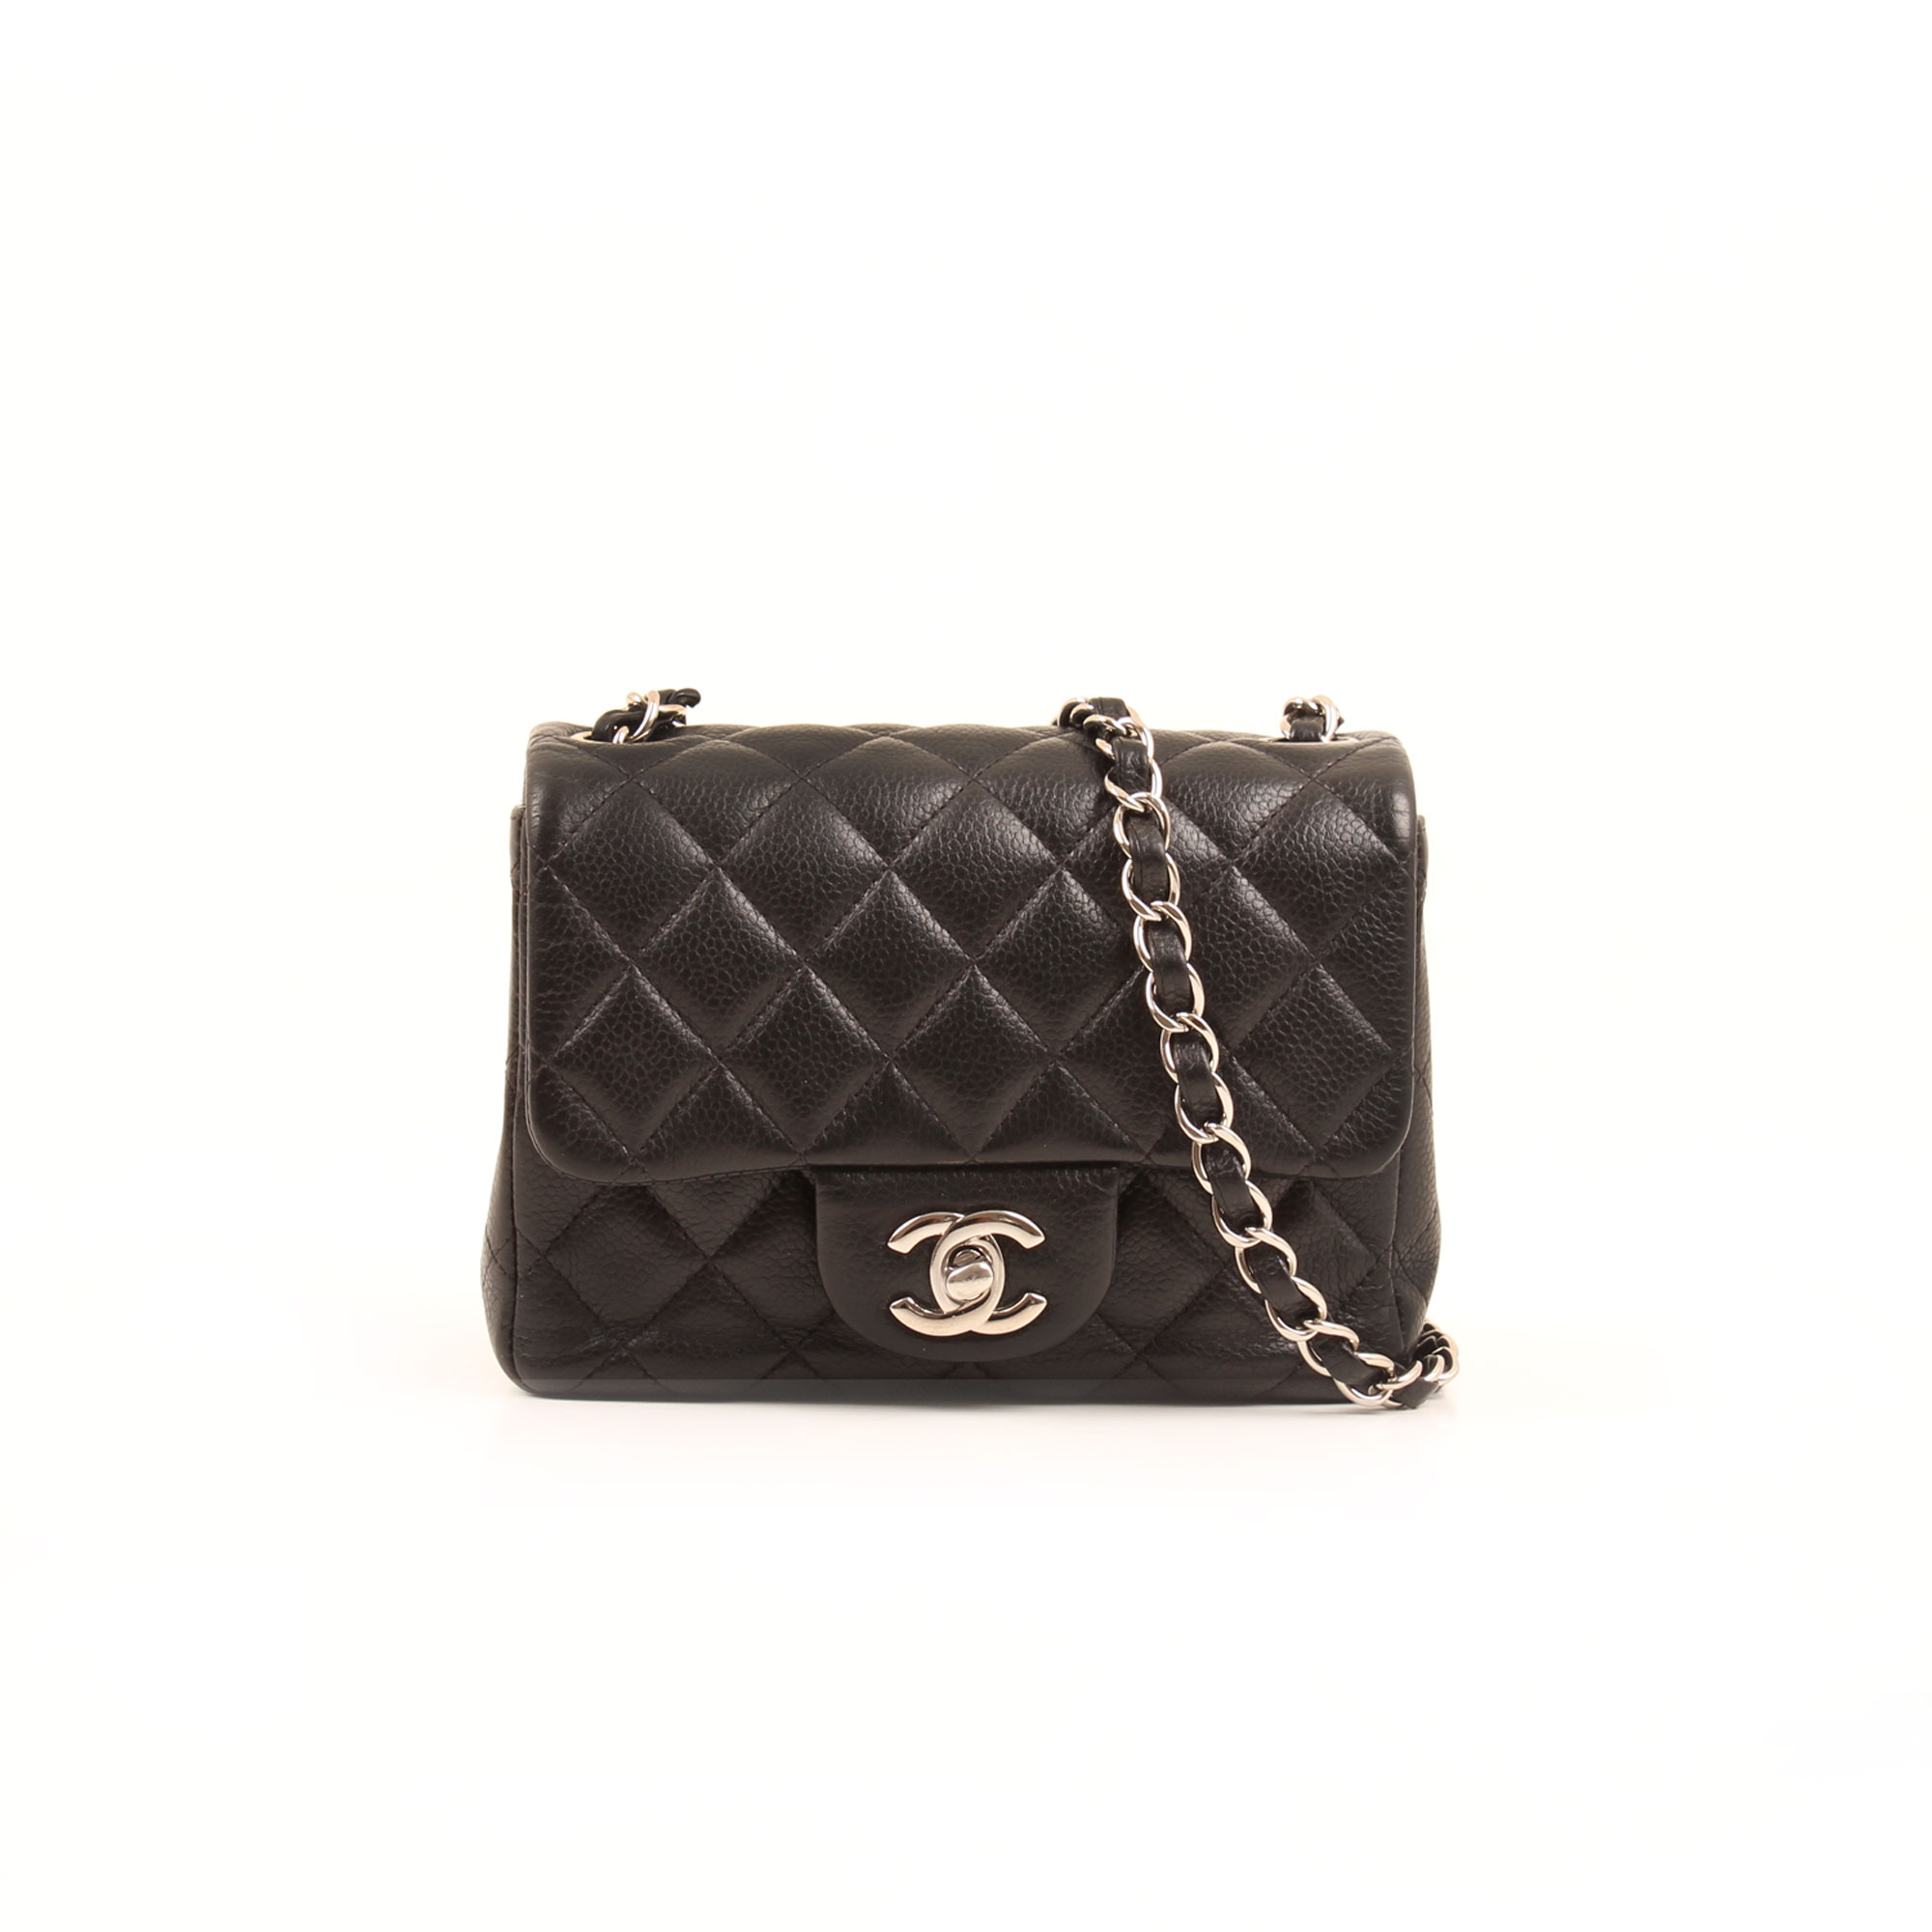 Front image of chanel mini timeless black caviar leather